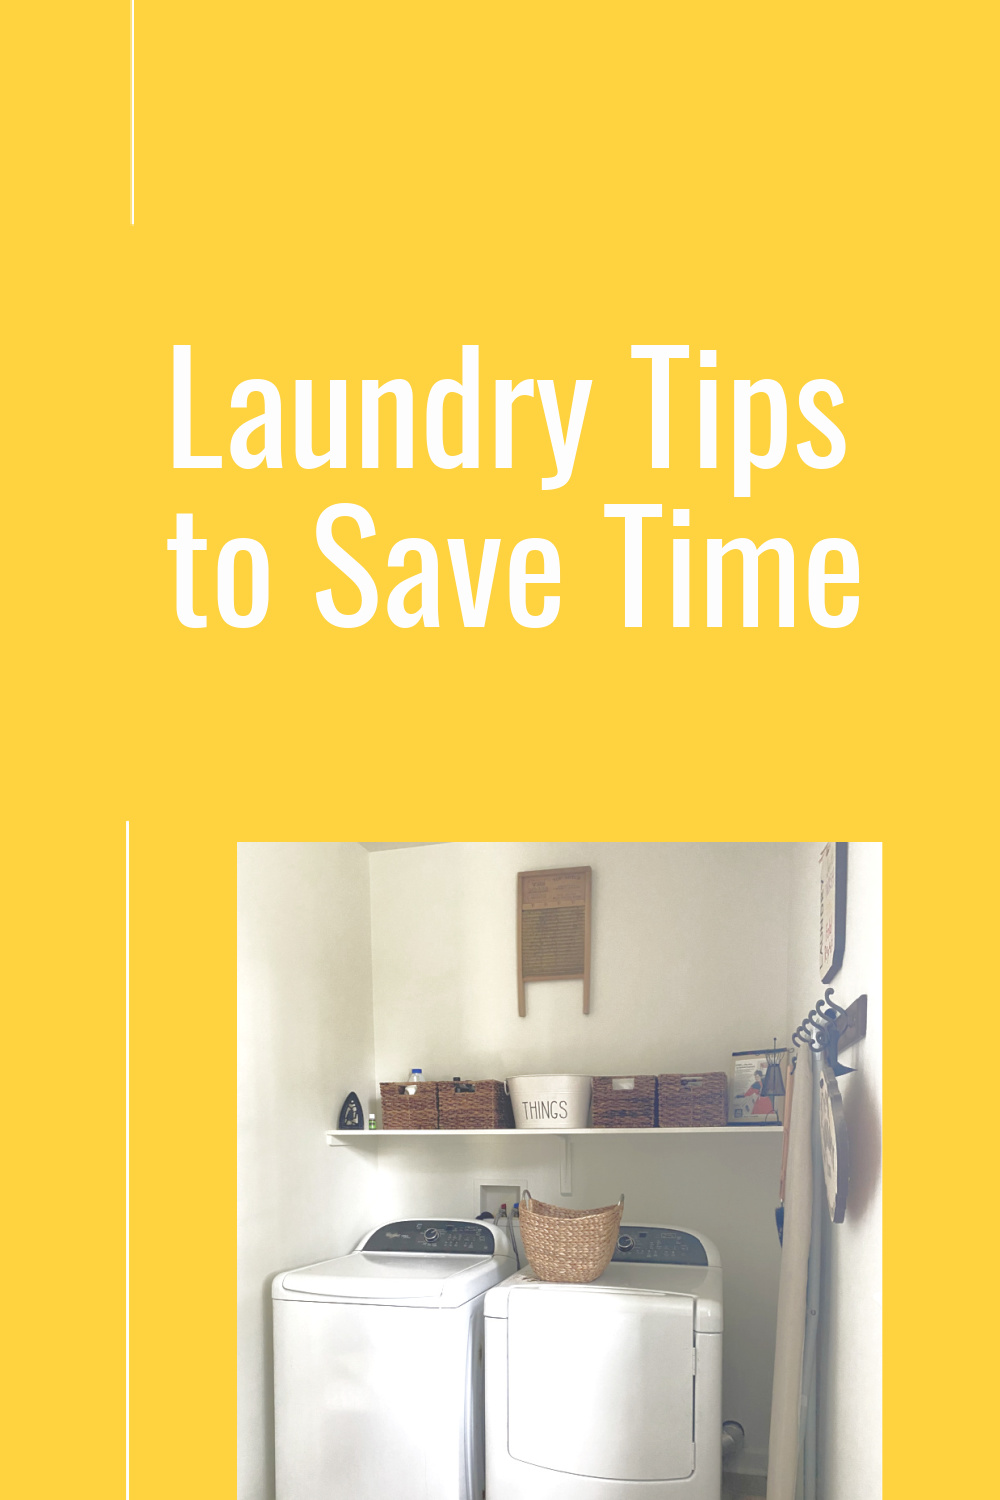 Laundry time saving tips to make more quality time.